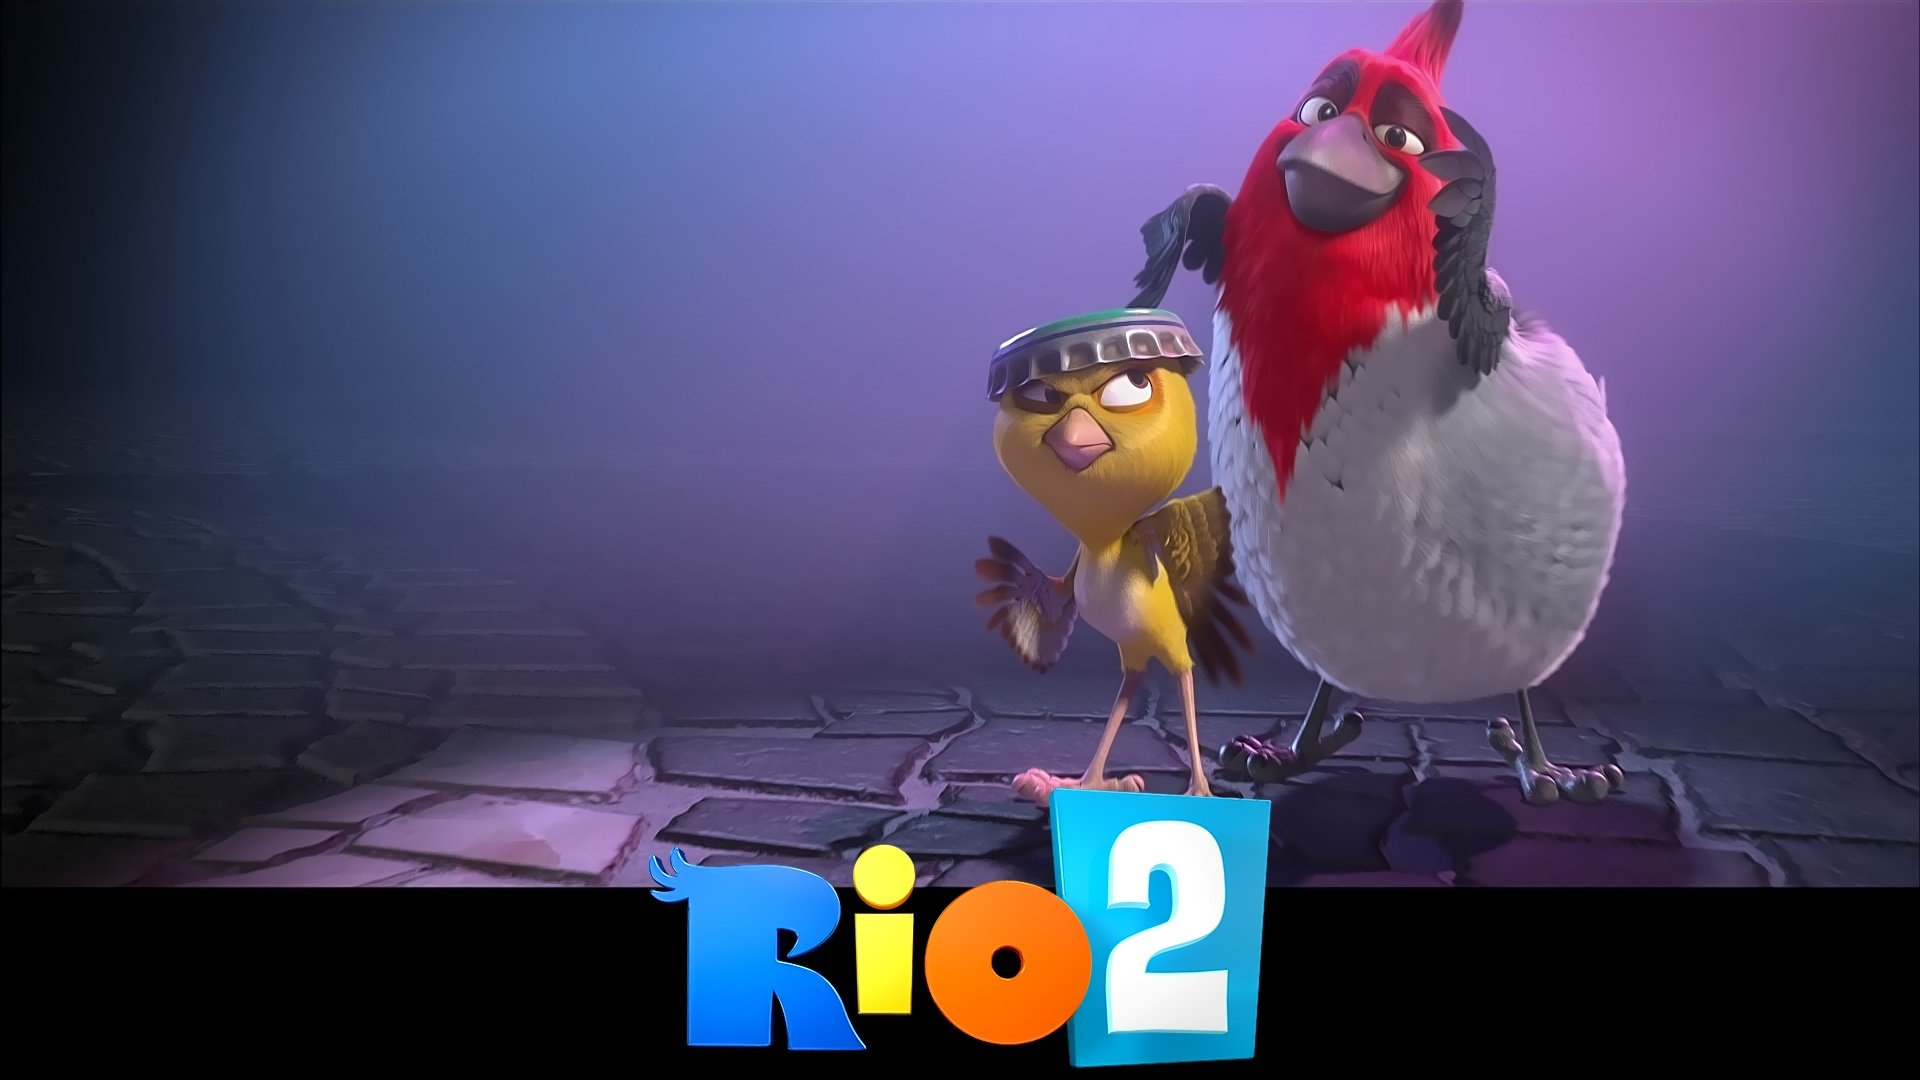 download hd 1080p rio 2 pc background id:307576 for free